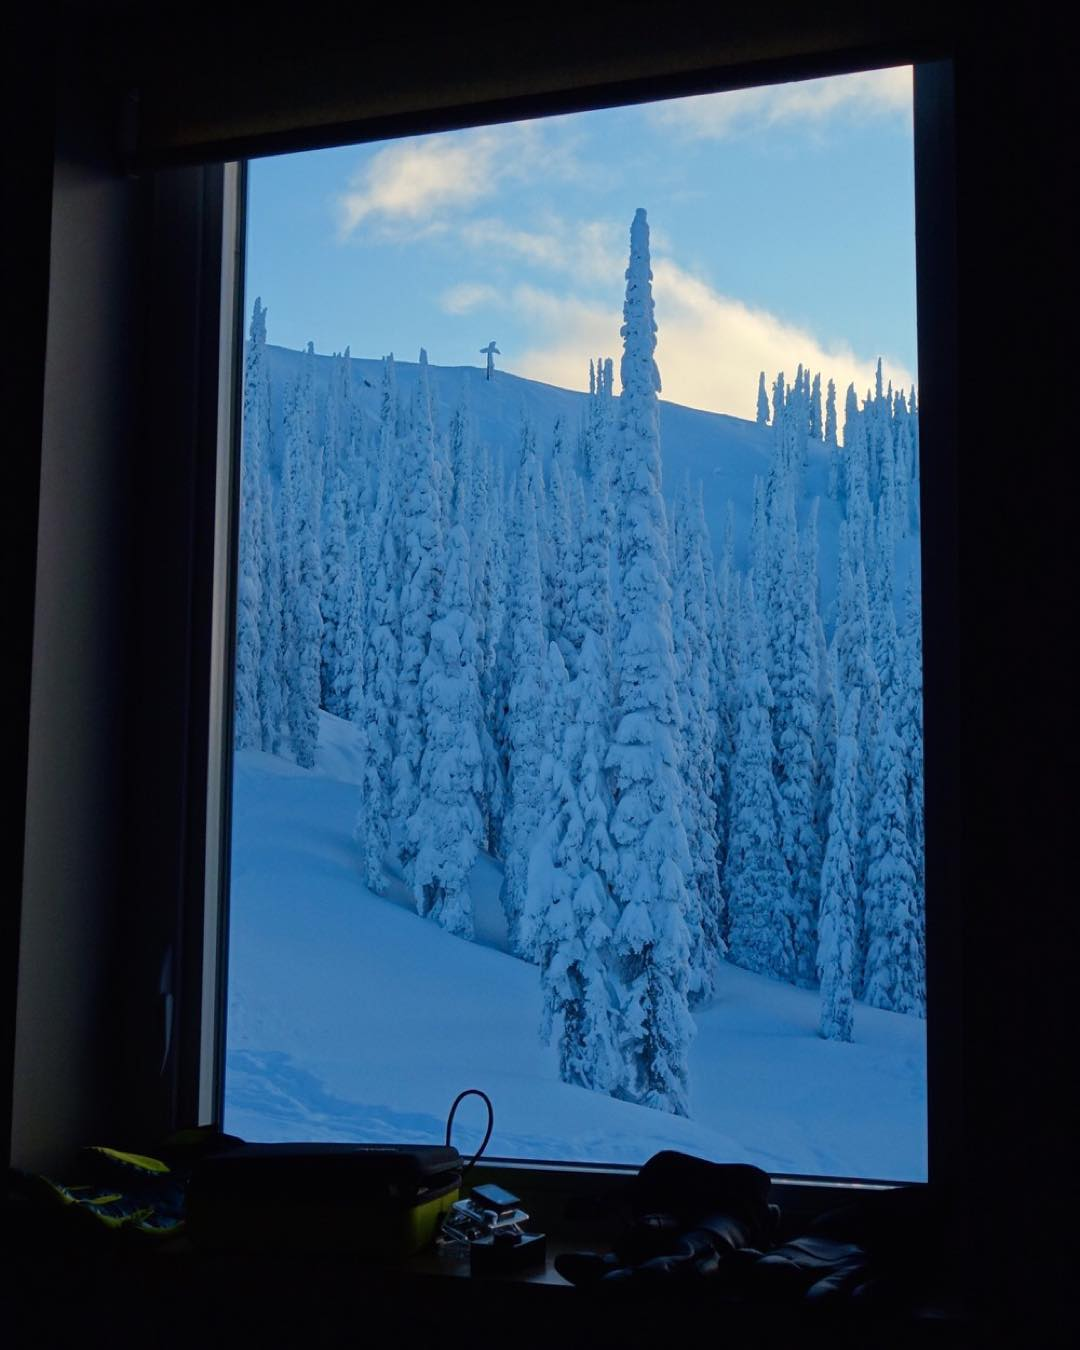 Epic view from our accommodations here at the @BaldfaceLodge - featuring a direct view of the Craig Kelly memorial on top of the ridge. It's designed to look like a giant sword is stuck into the snow, placed there to commemorate the legendary...